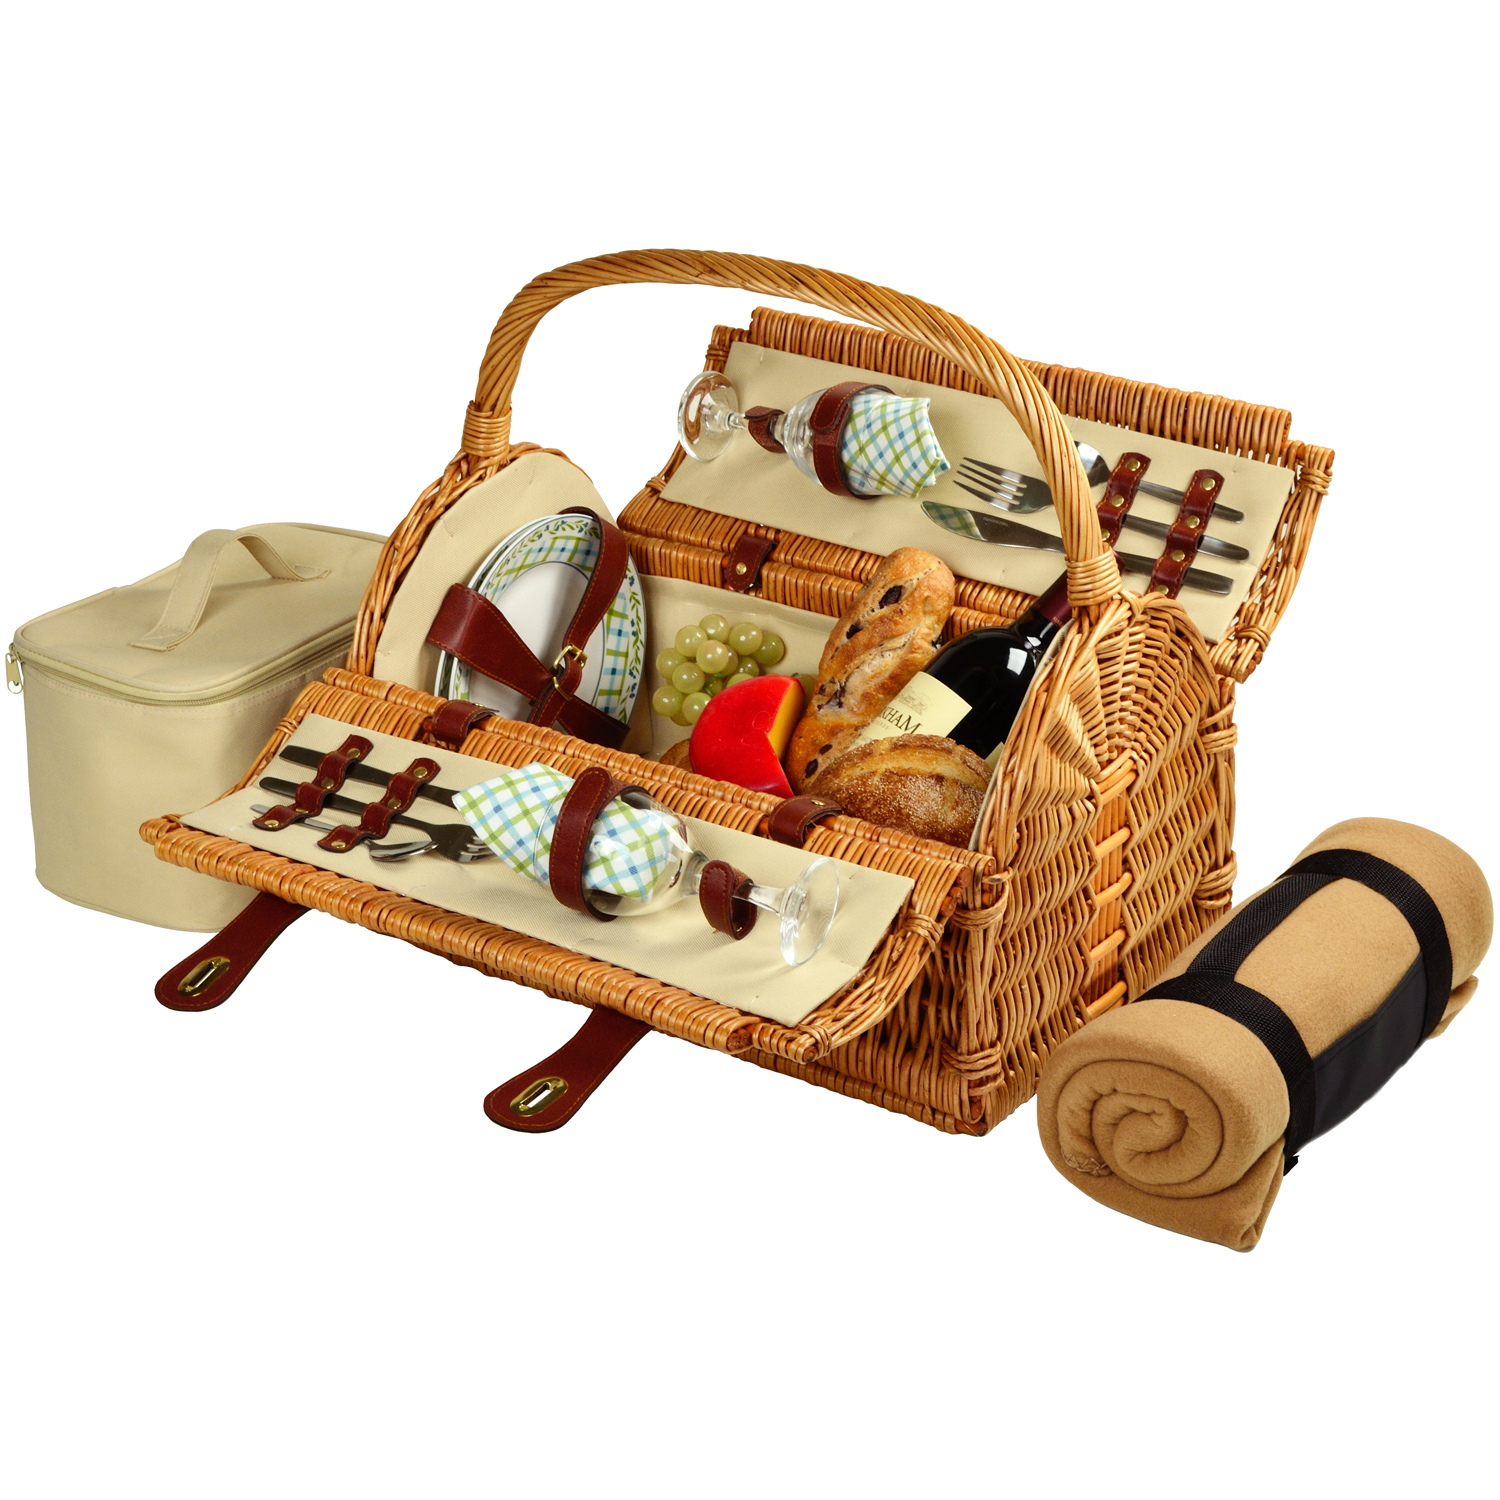 Picnic at Ascot Sussex Picnic Basket for 2 w/Blkt  (709B-G)